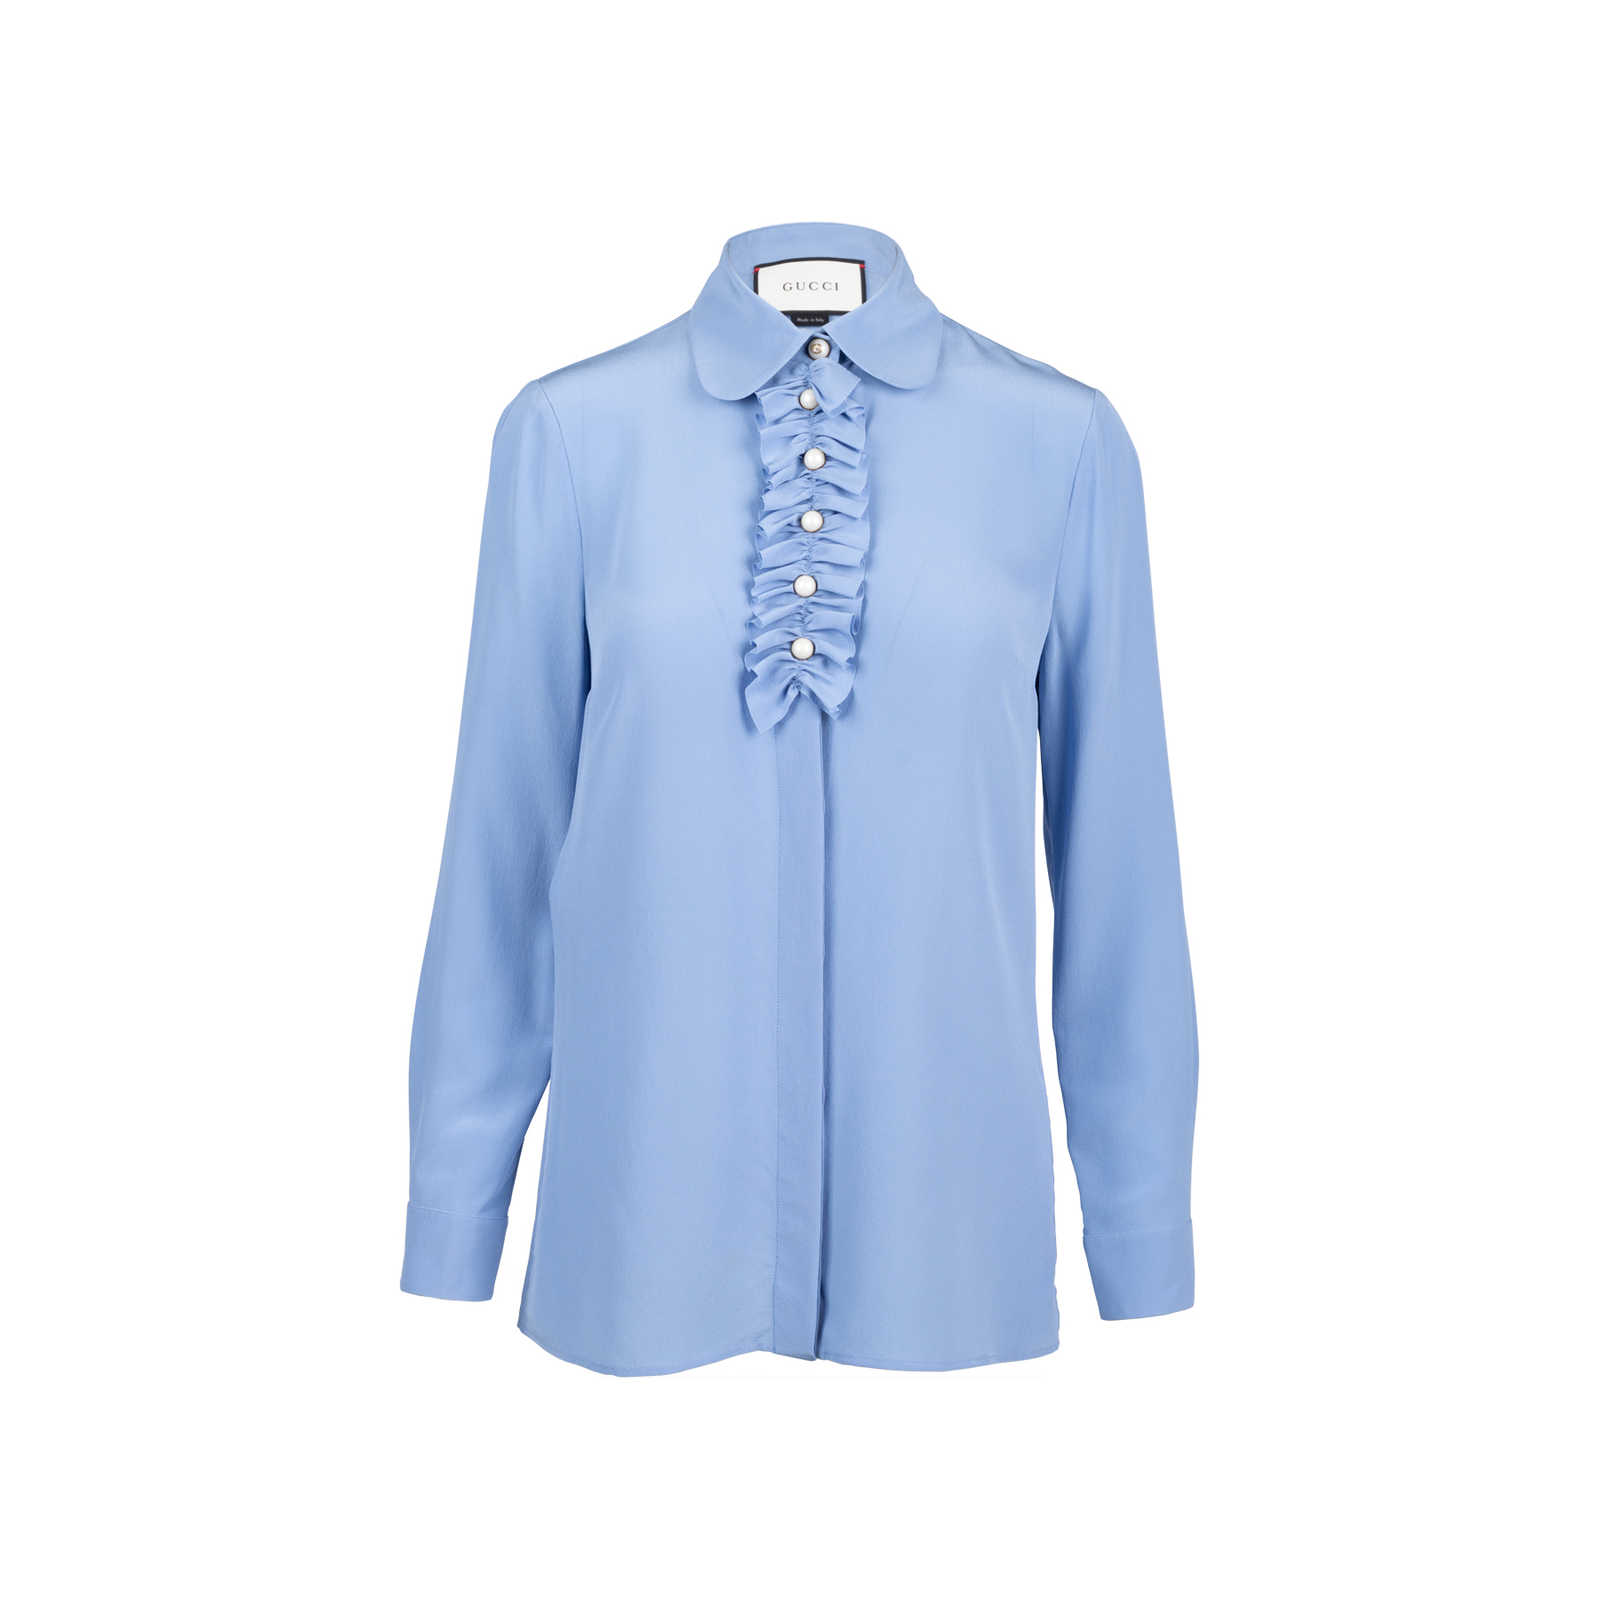 6e9ed192a05 Authentic Second Hand Gucci Silk Ruffle Faux Pearl Blouse (PSS-051-00443)  ...